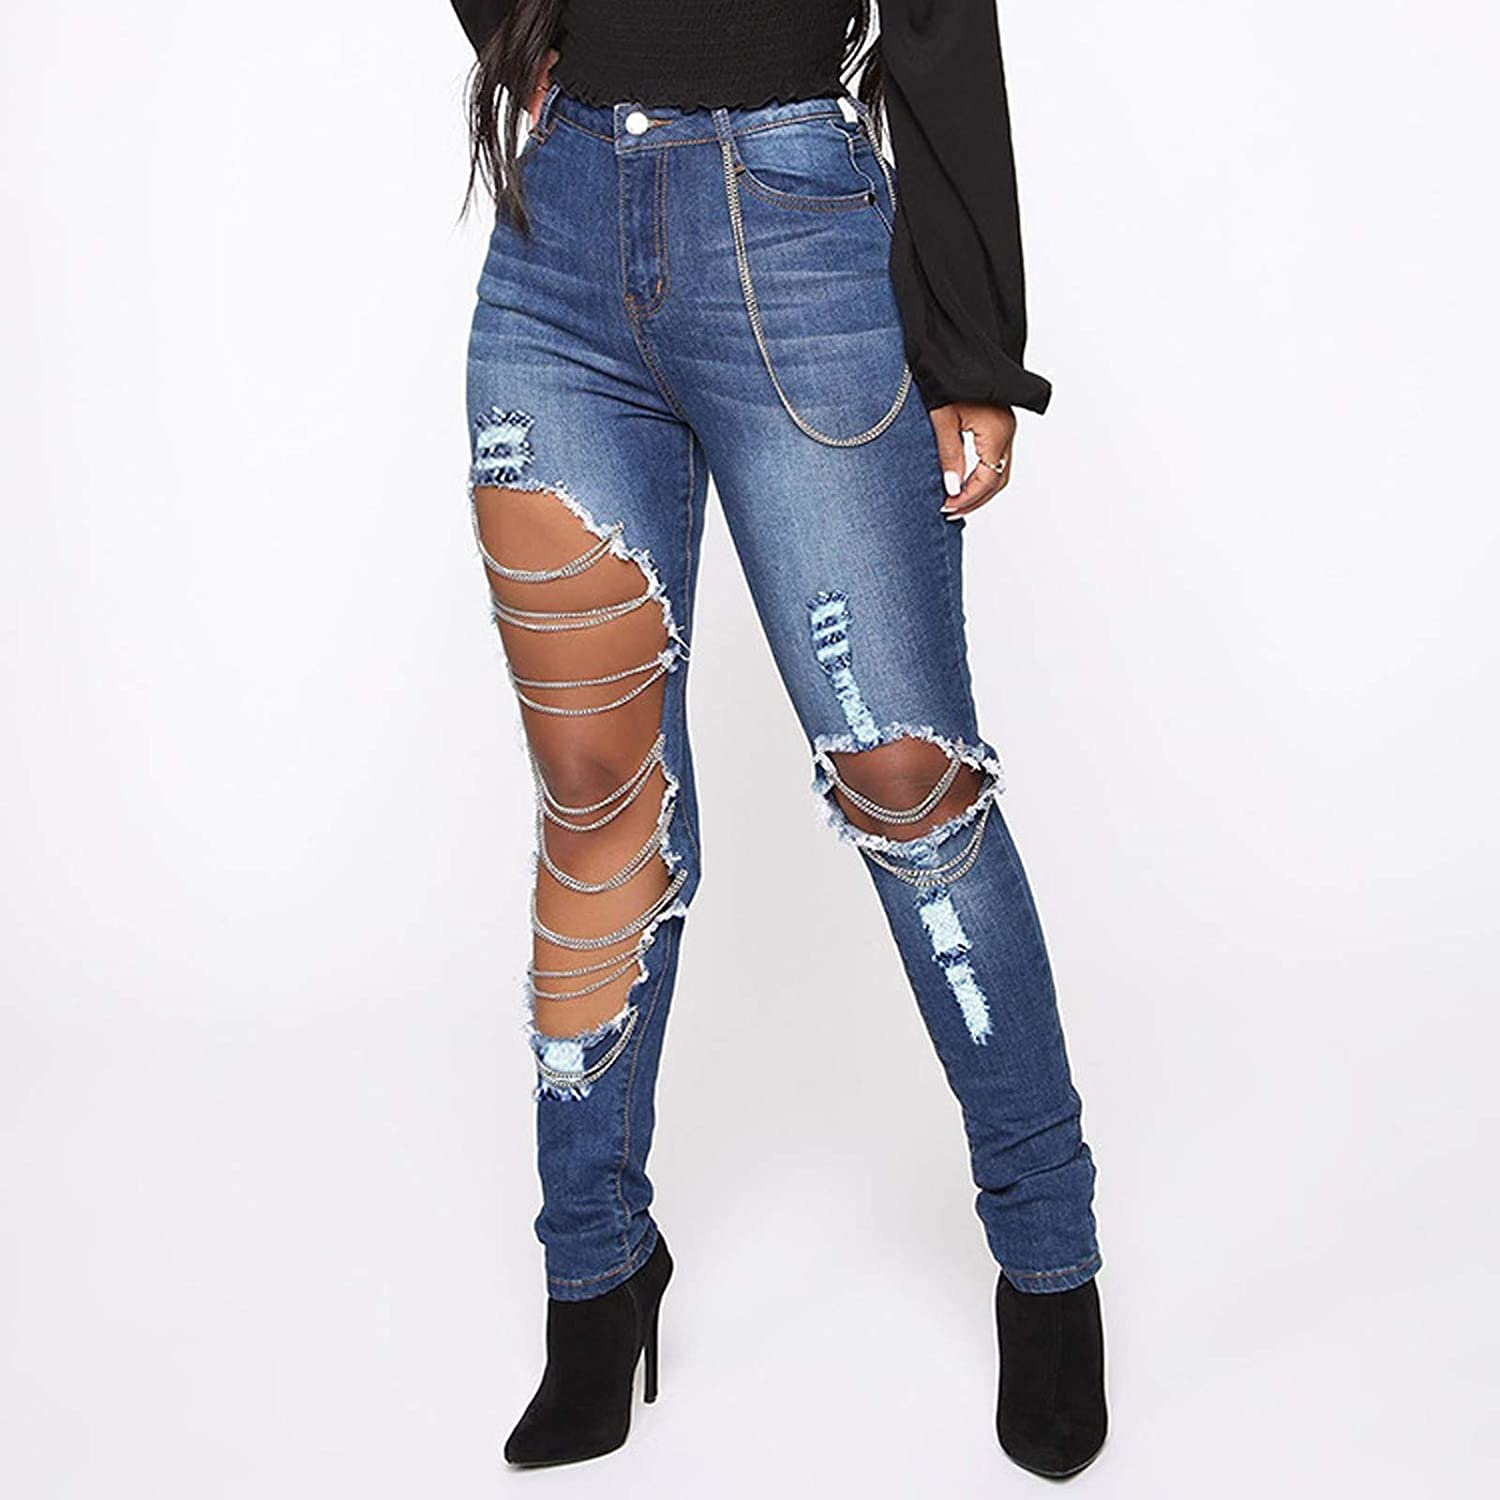 Euone_Clothes Pants for Women Casual, Women Slim Washed Ripped Hole Gradient Long Jeans Denim Sexy Regular Pants